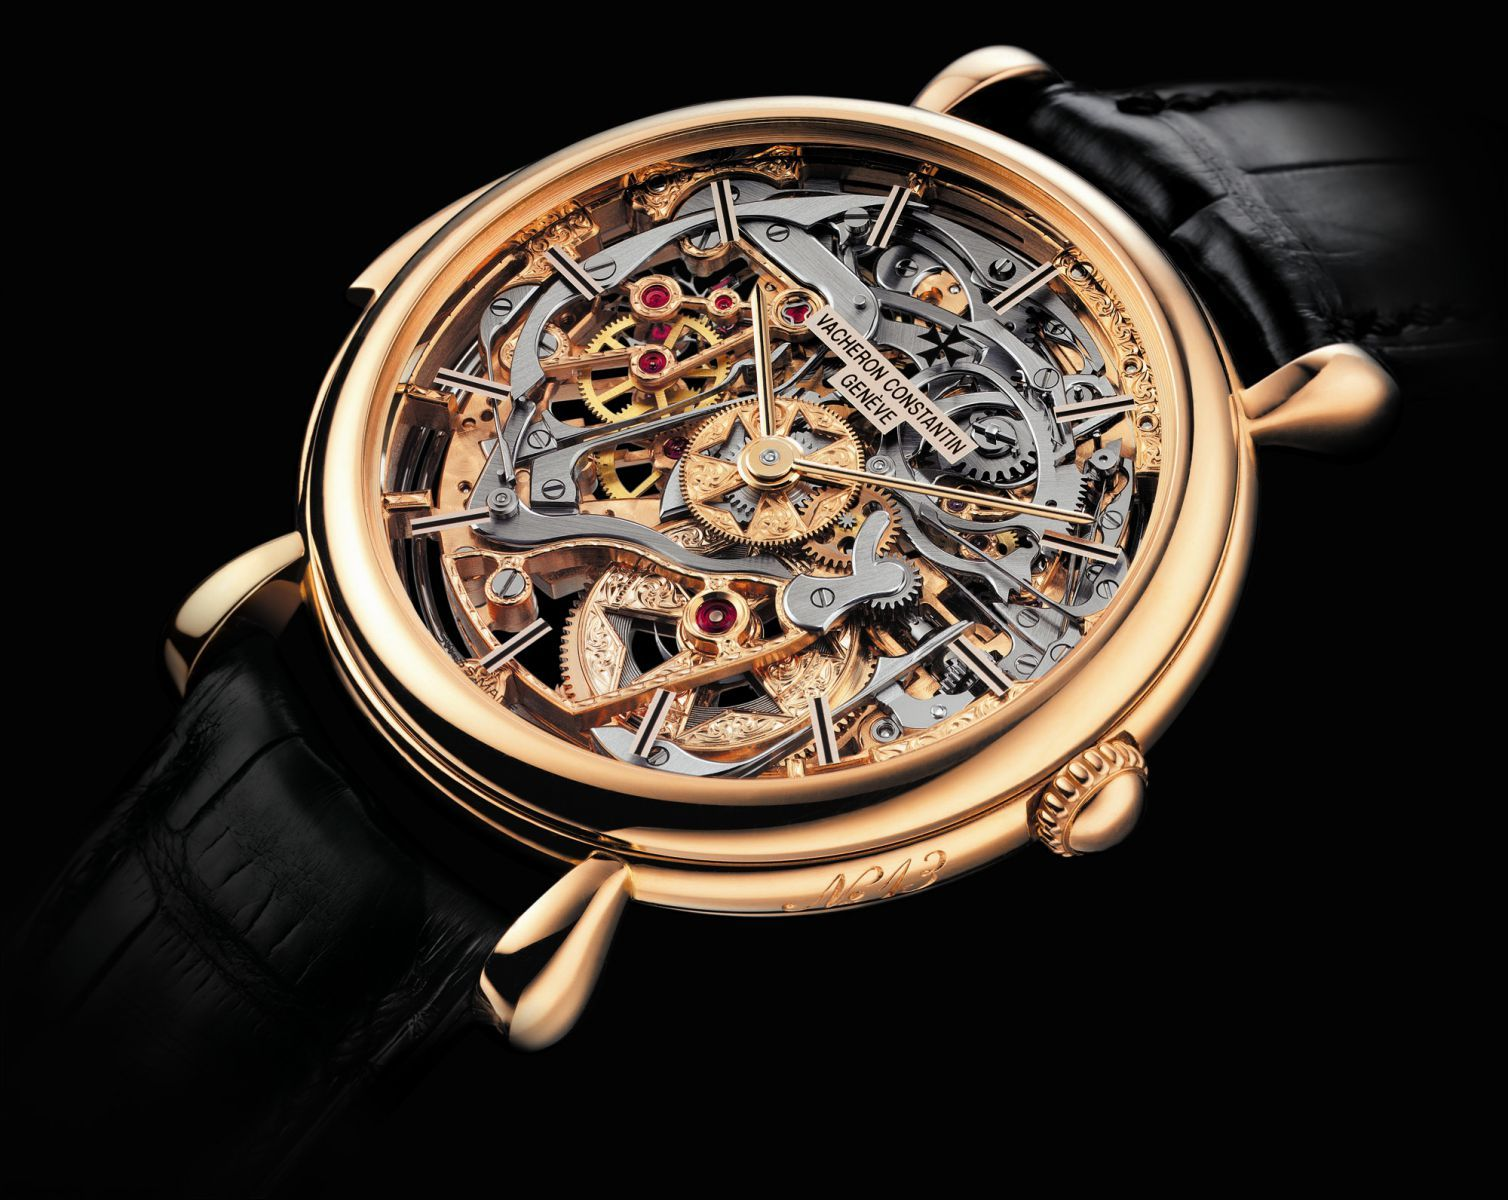 Top 16 Minute Repeaters in the World Luxury watches for